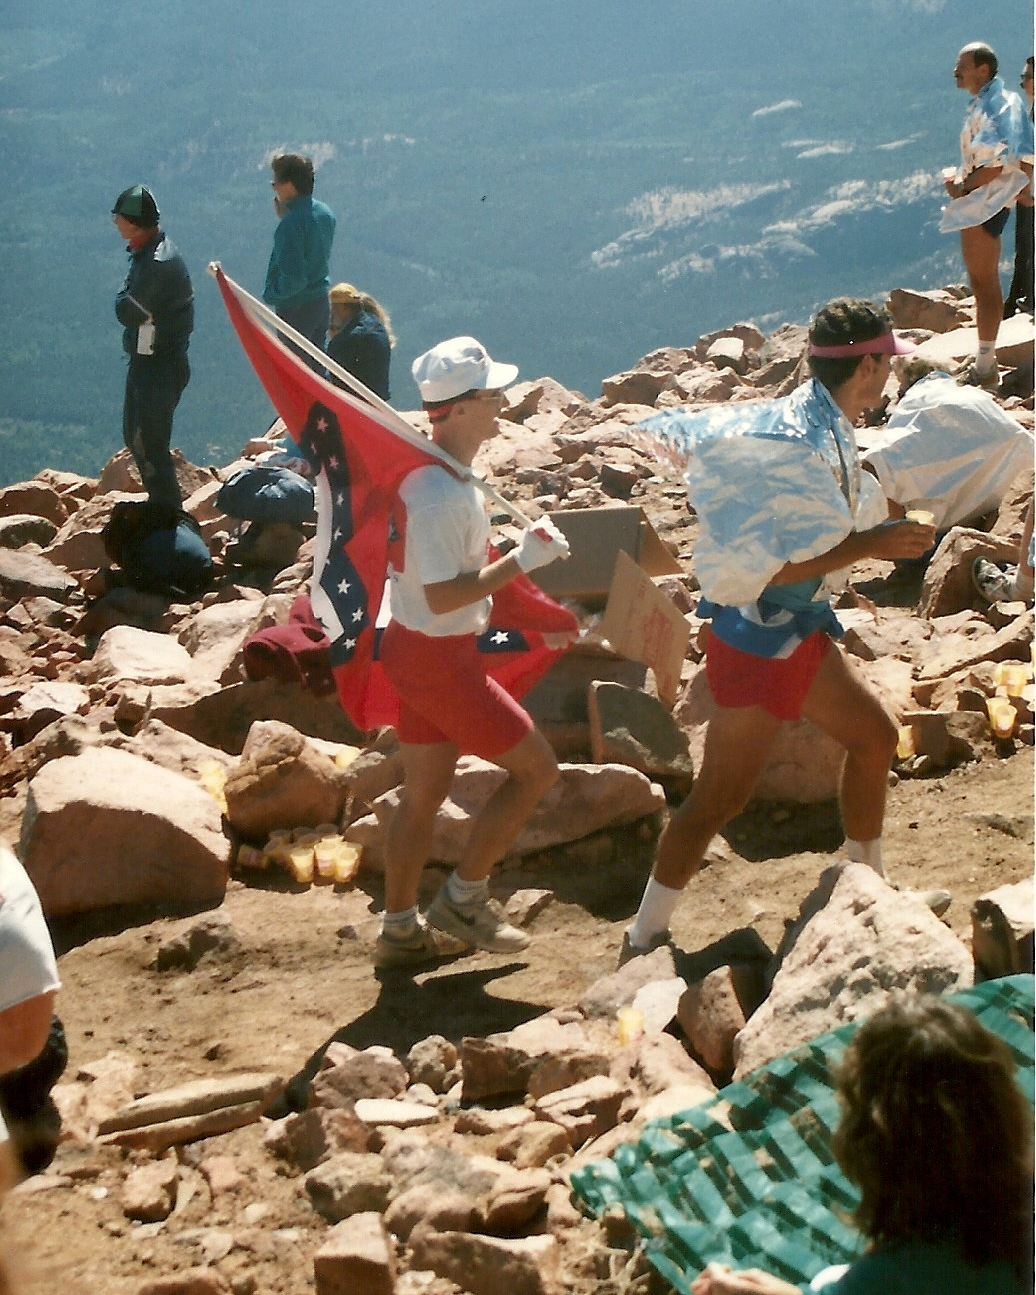 By 1988, carrying an Arkansas flag to the summit was tradition.